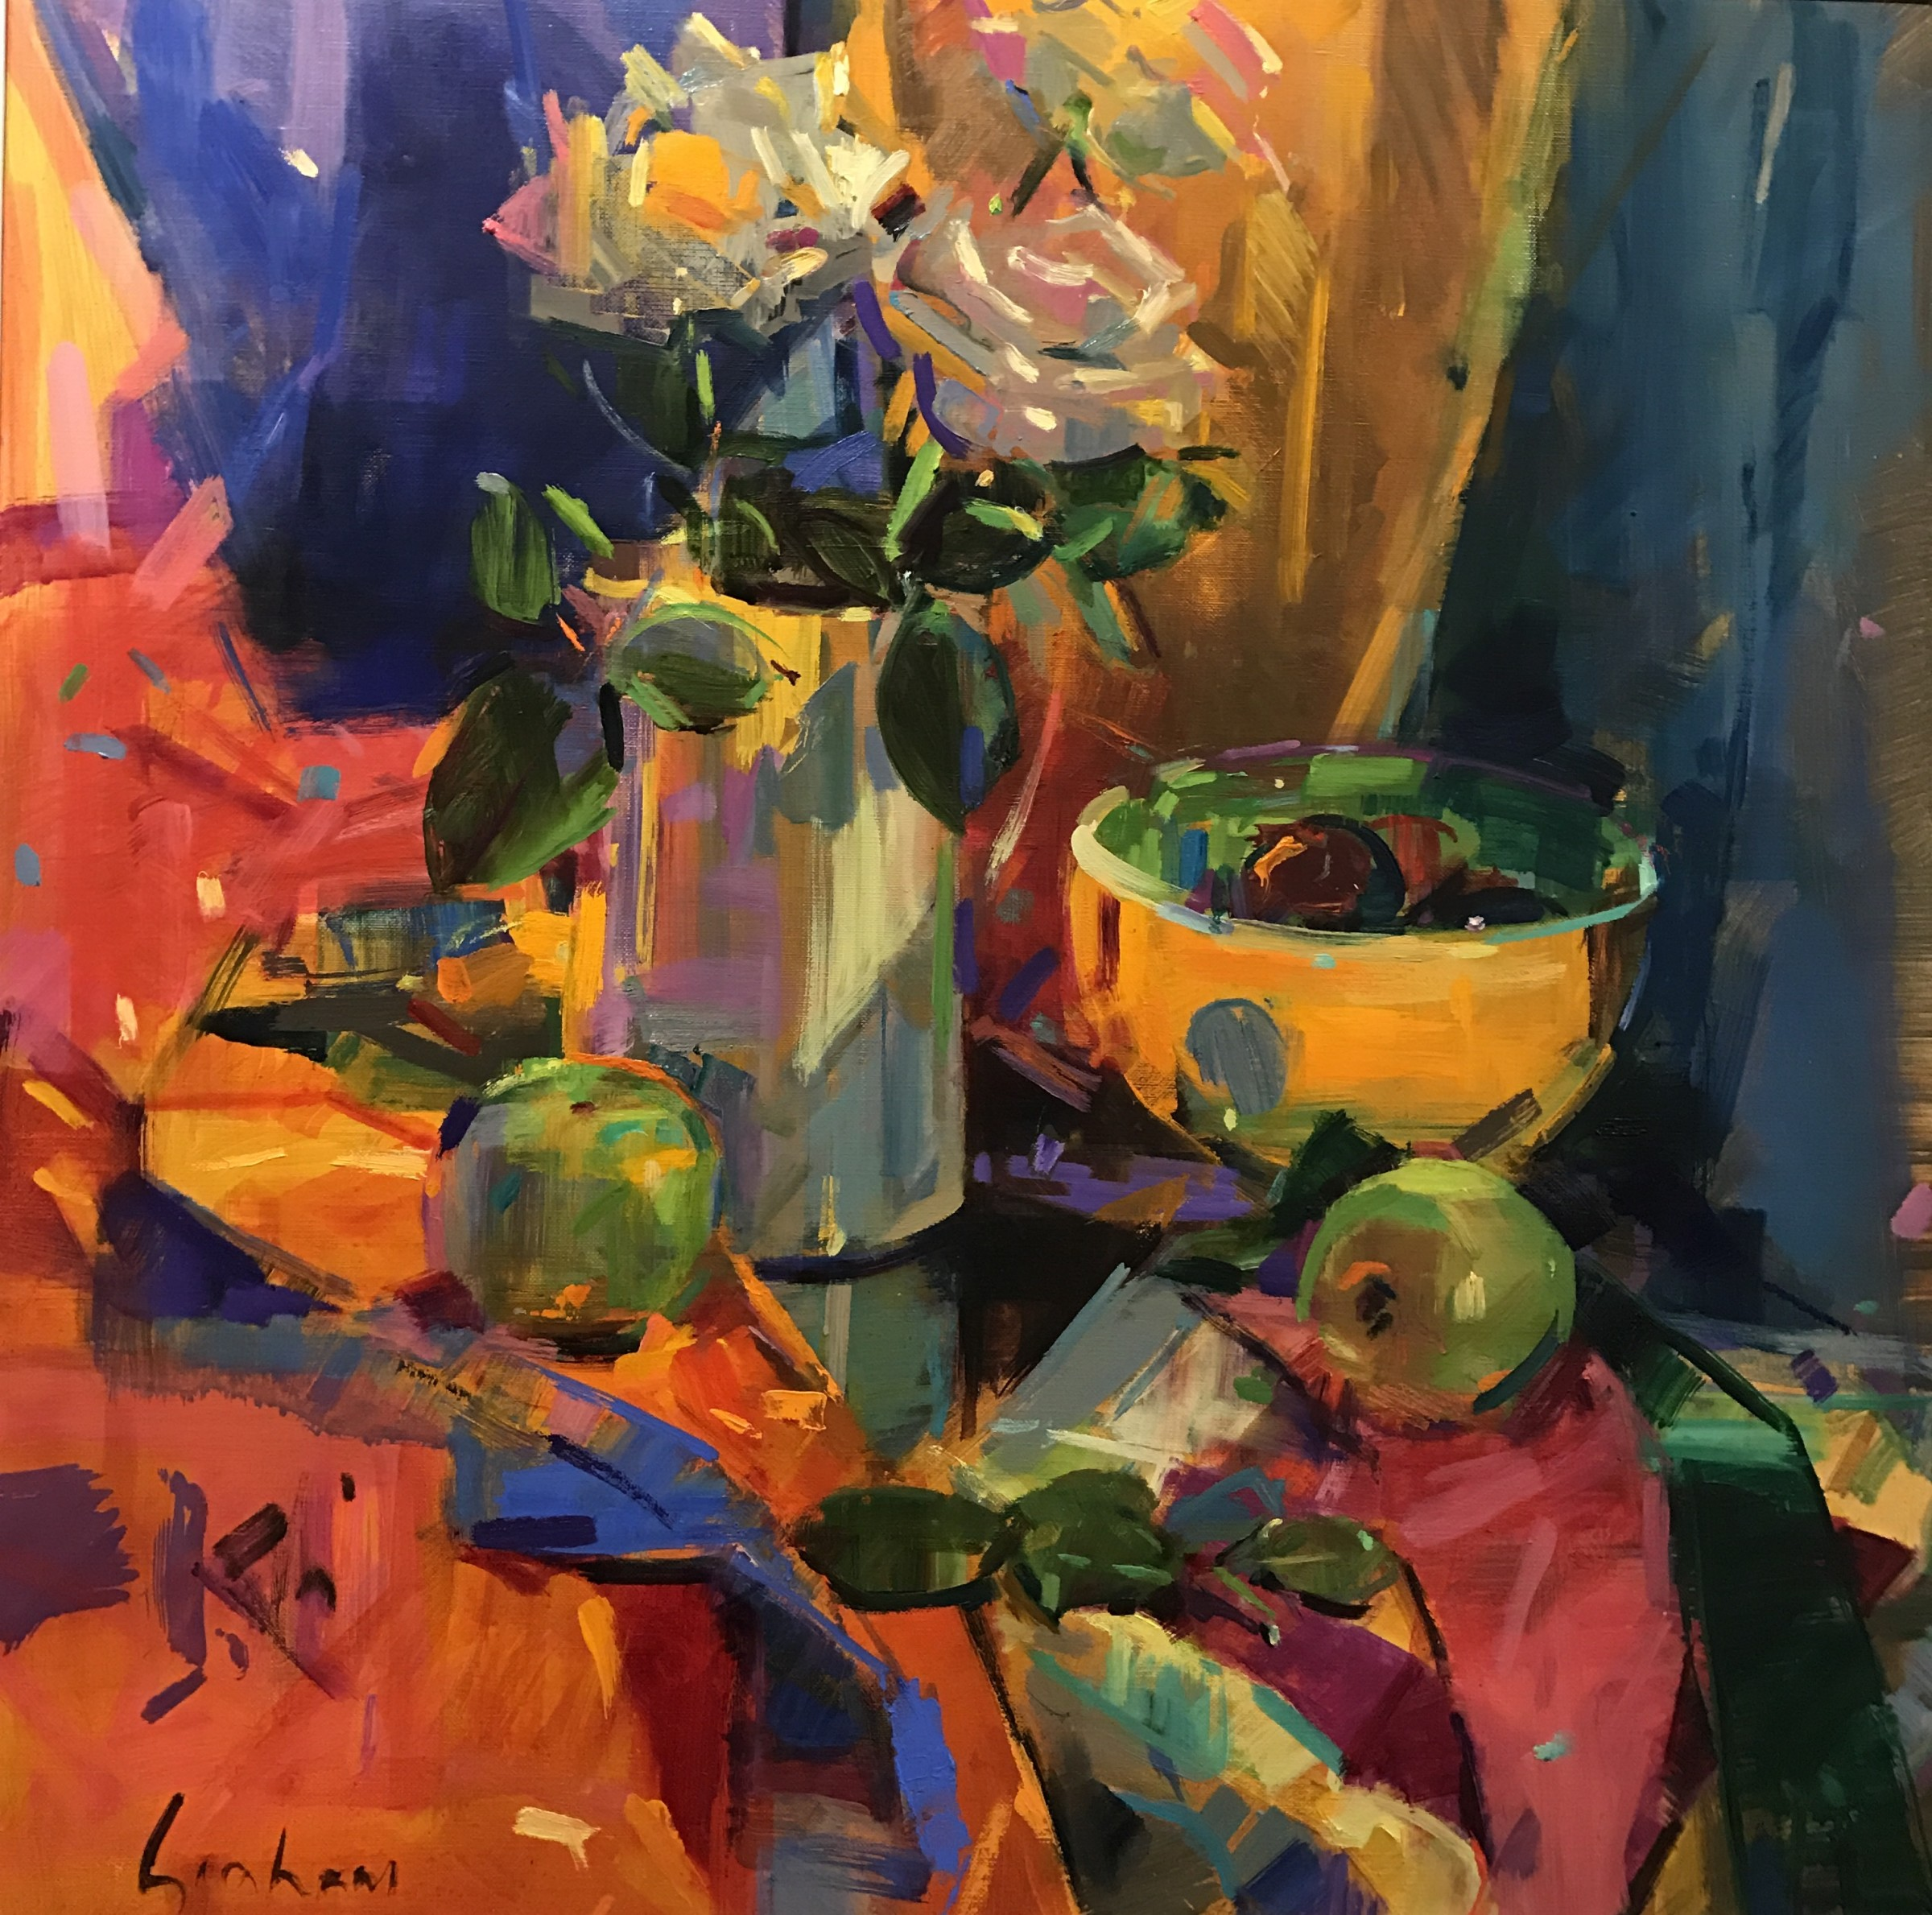 "<span class=""link fancybox-details-link""><a href=""/artists/31-peter-graham-roi/works/614-peter-graham-roi-notting-hill-roses/"">View Detail Page</a></span><div class=""artist""><strong>Peter Graham ROI</strong></div> <div class=""title""><em>Notting Hill Roses</em></div> <div class=""medium"">Oil on Canvas</div> <div class=""dimensions"">66 x 66 cm</div>"